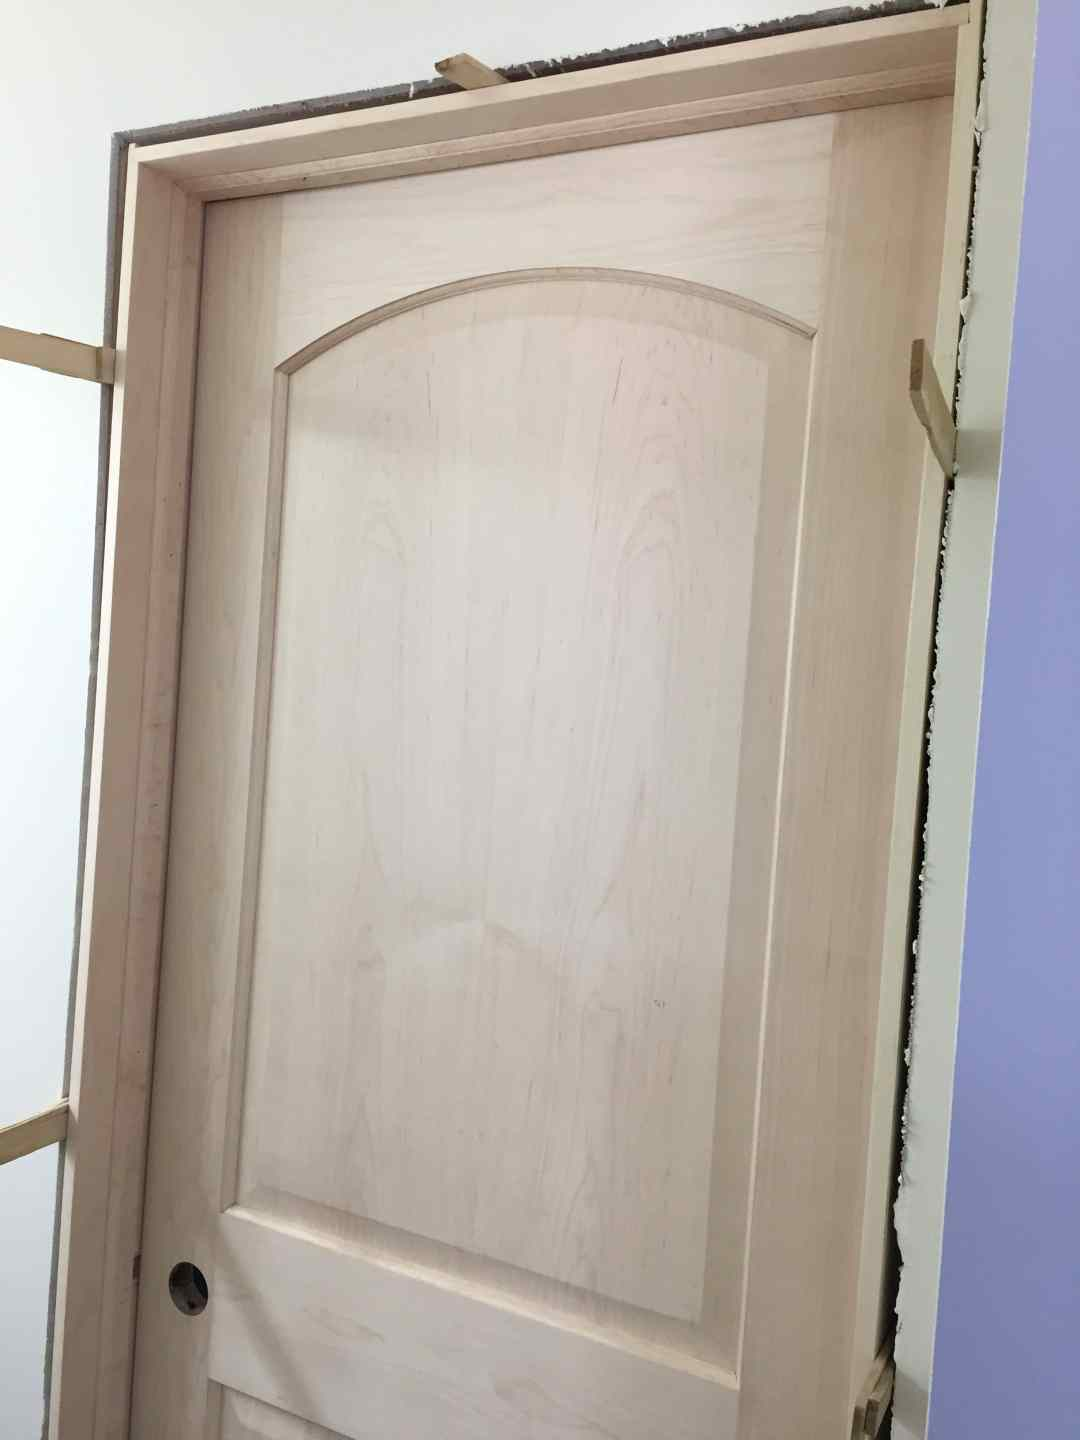 install a pre-hung door, shims in place